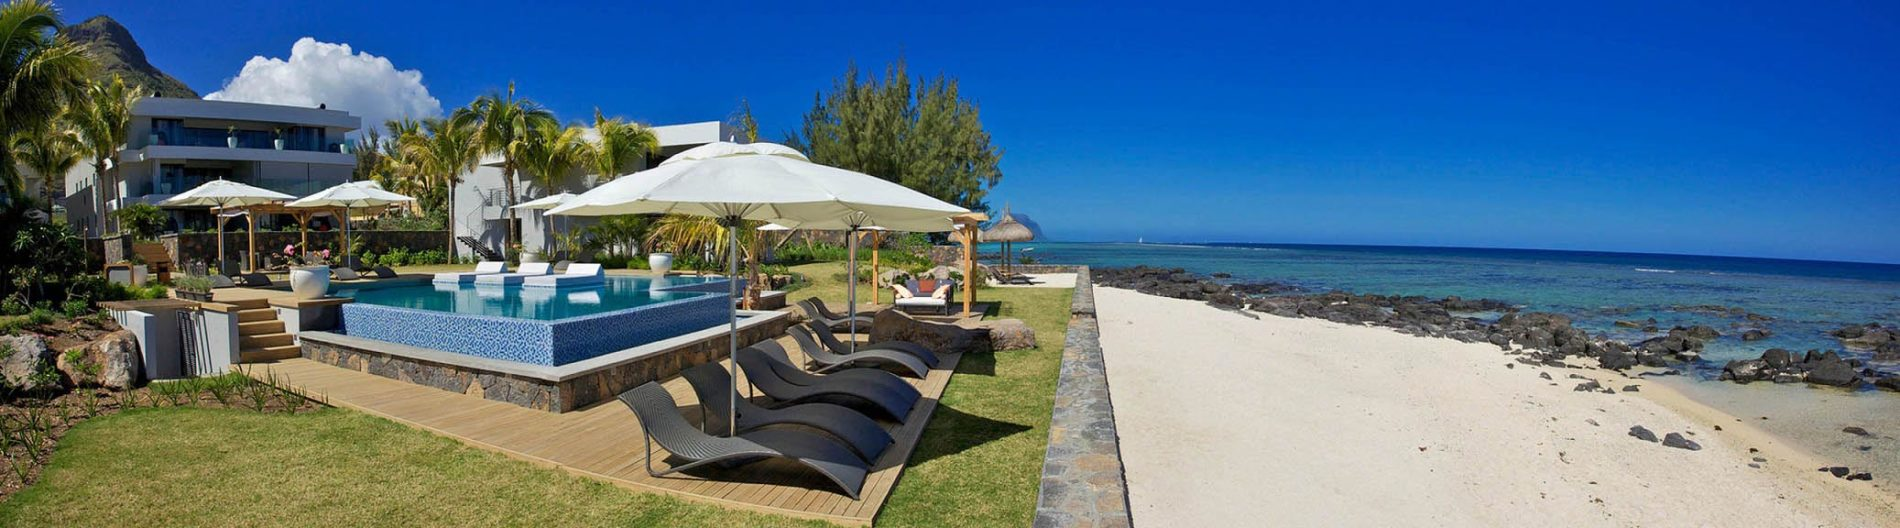 leora beach apartments apartment rental in mauritius